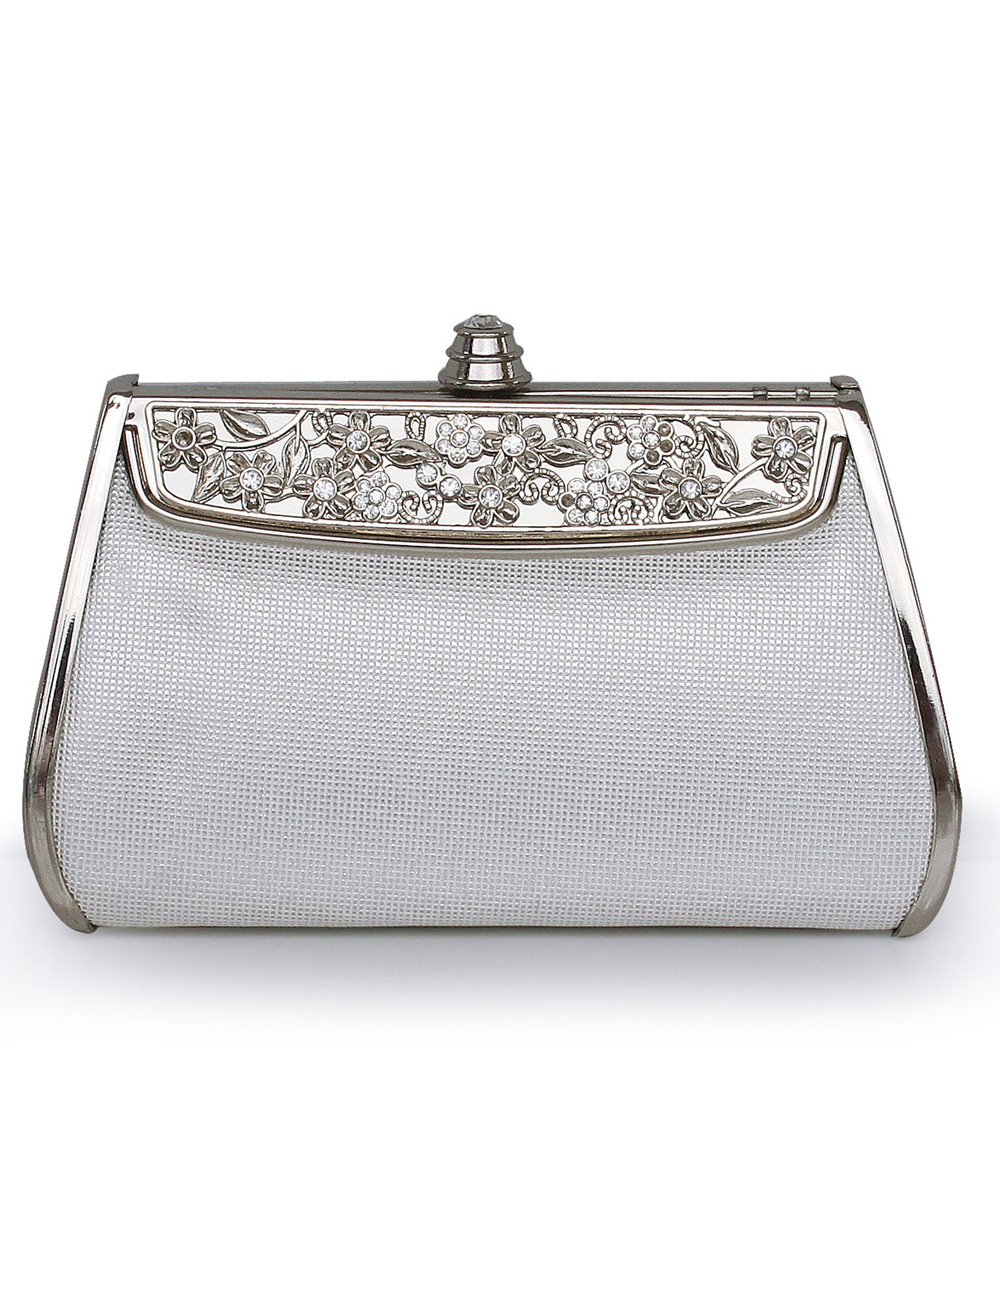 Vintage Silver Embossed Evening Bag